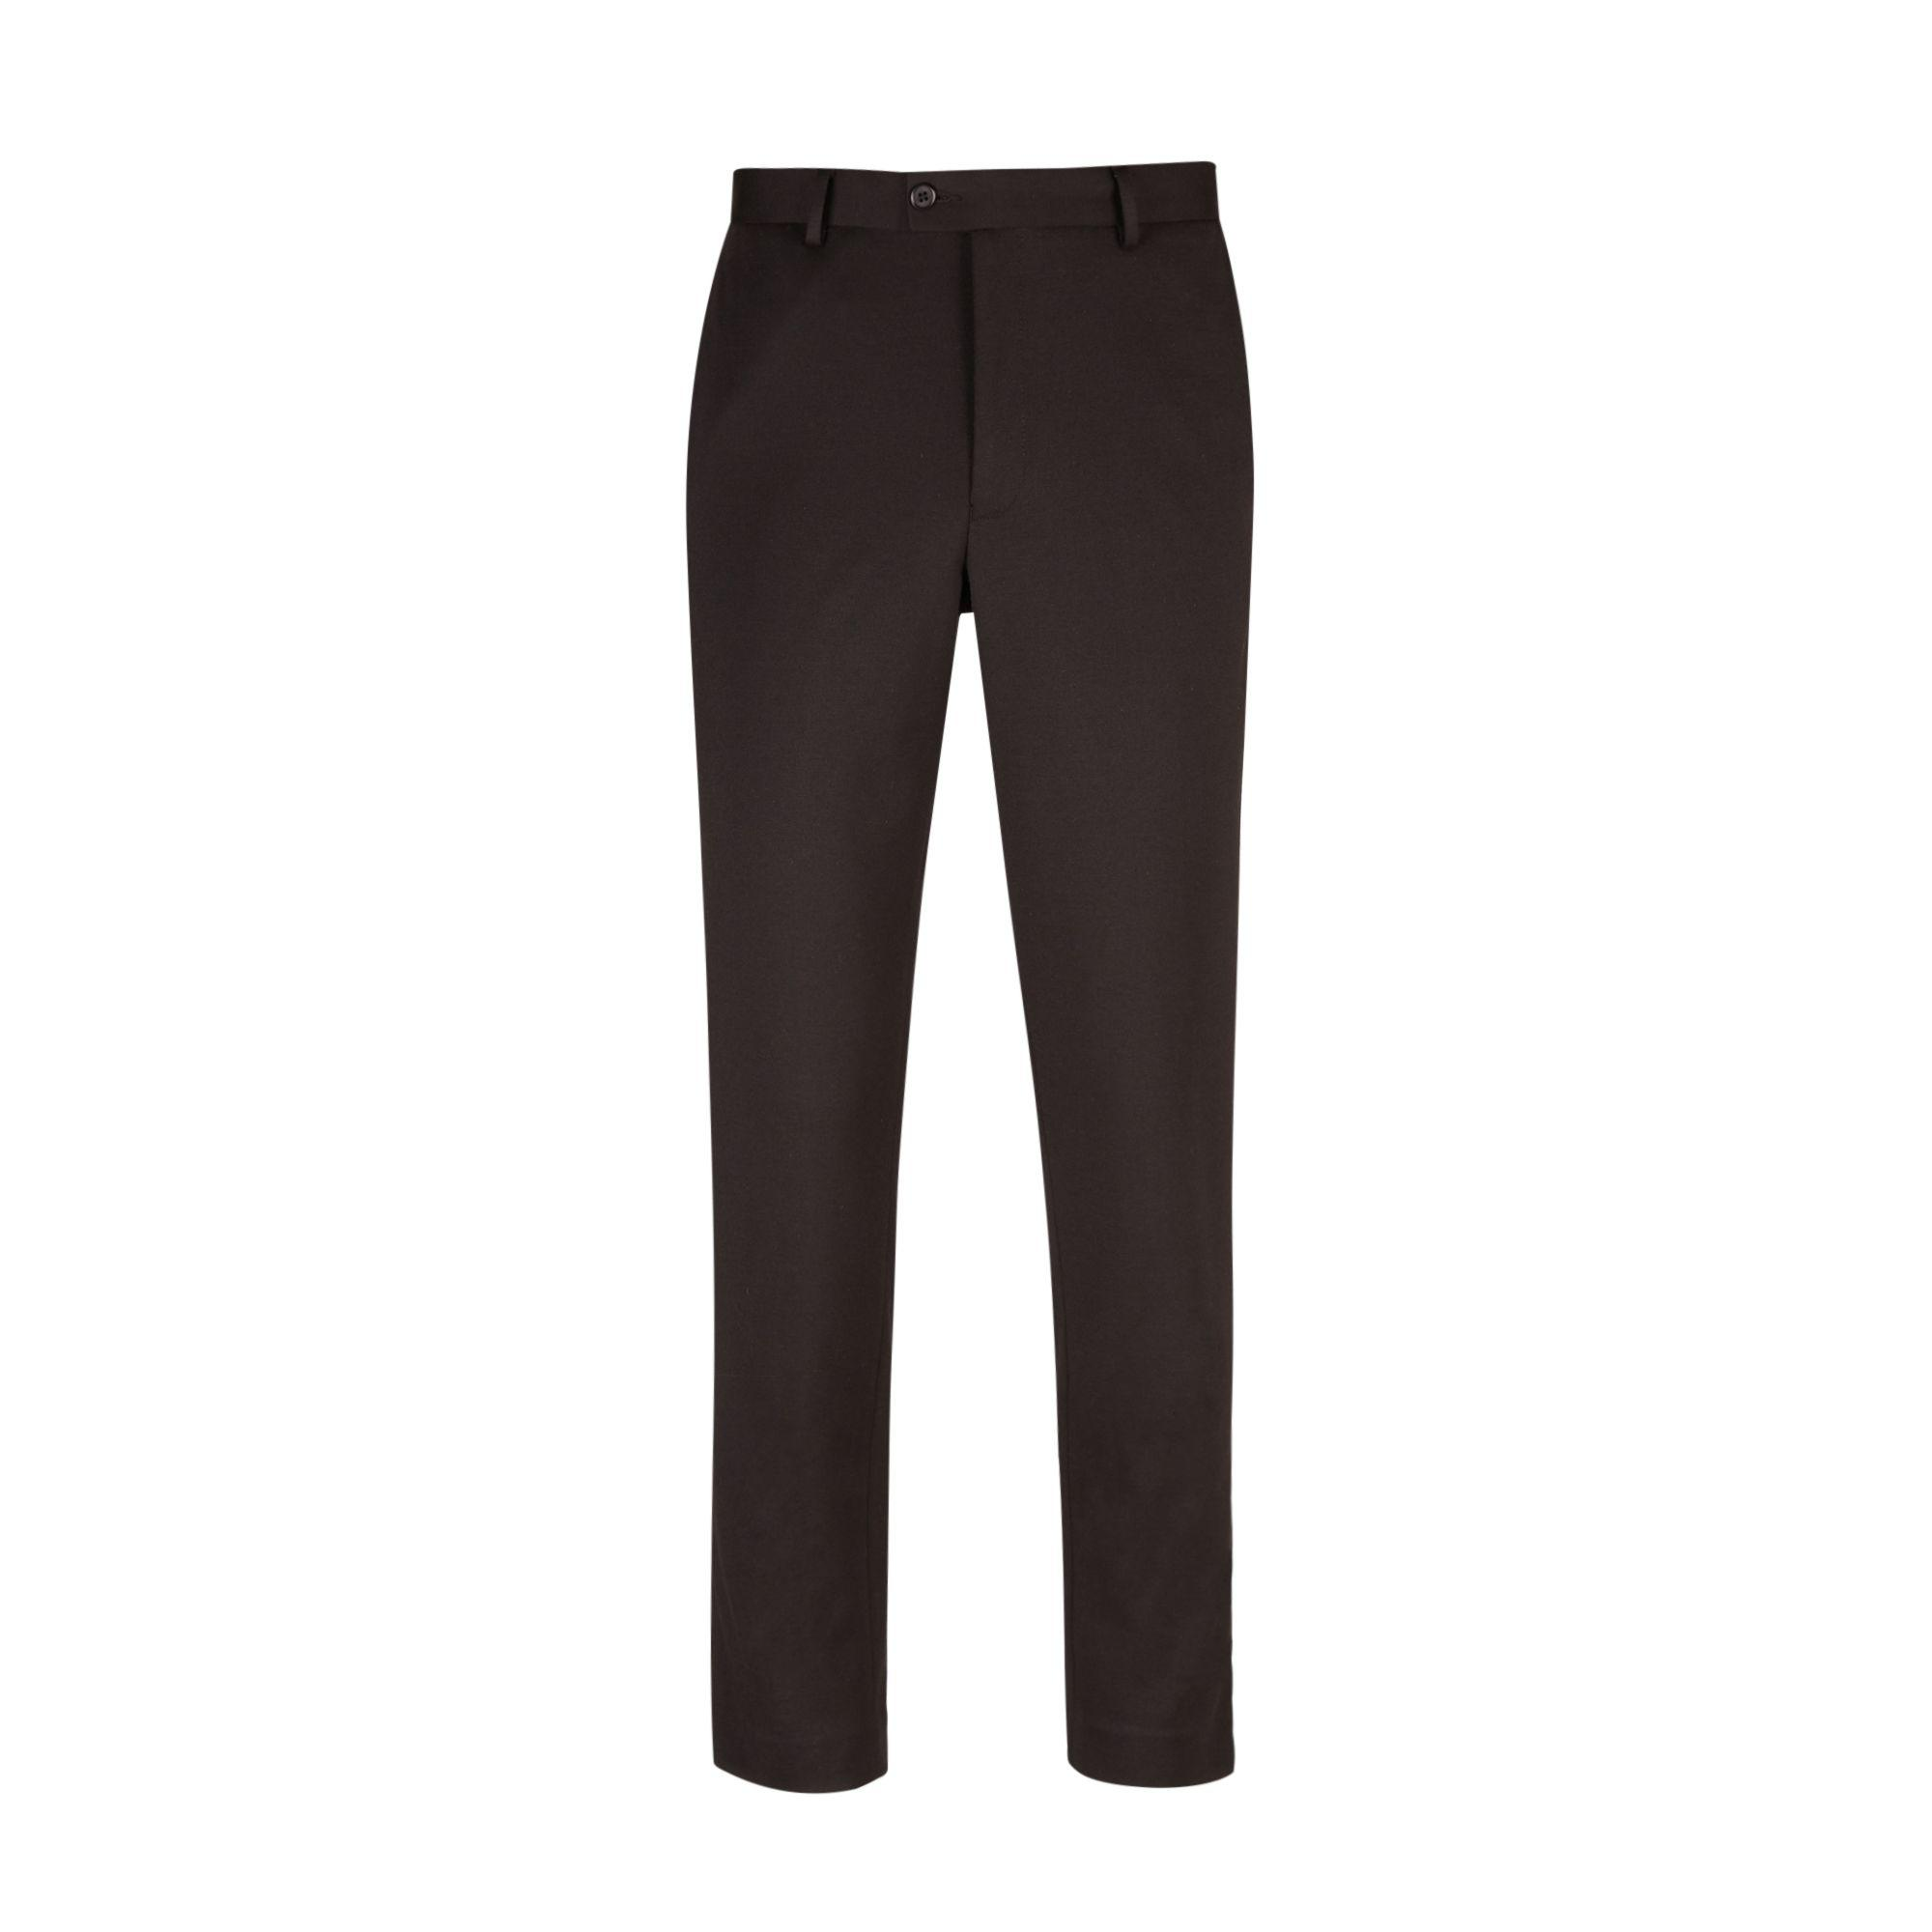 Burton Black Side Striped Tapered Fit Jersey Trousers for Men